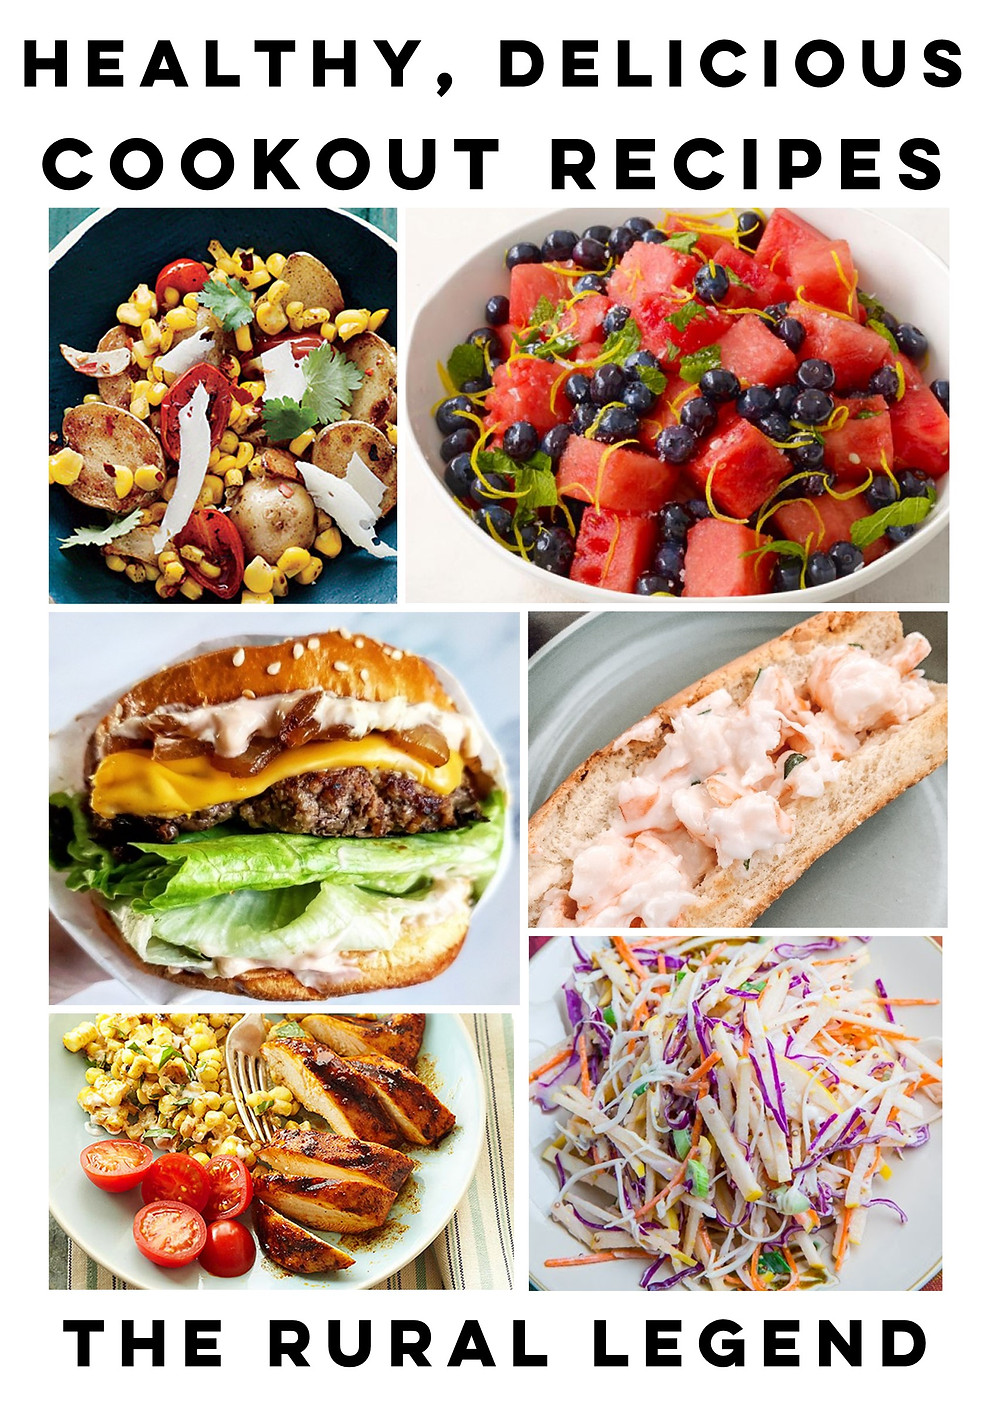 Ww recipes, ww cookout, healthy cookout recipes, bbq recipes, ww ideas, healthy recipes swaps, weight watchers, summer recipes, summer cookout, the rural legend, easy recipes, easy cookout recipes, summer entertaining, low calorie recipes, low fat recipes, ww blue plan recipes, food blog, healthy food blog, easy healthy recipes, family friendly recipes, picnic ideas, cookout ideas, cookout menu, healthy summer desserts, simple summer meals, recipe blog